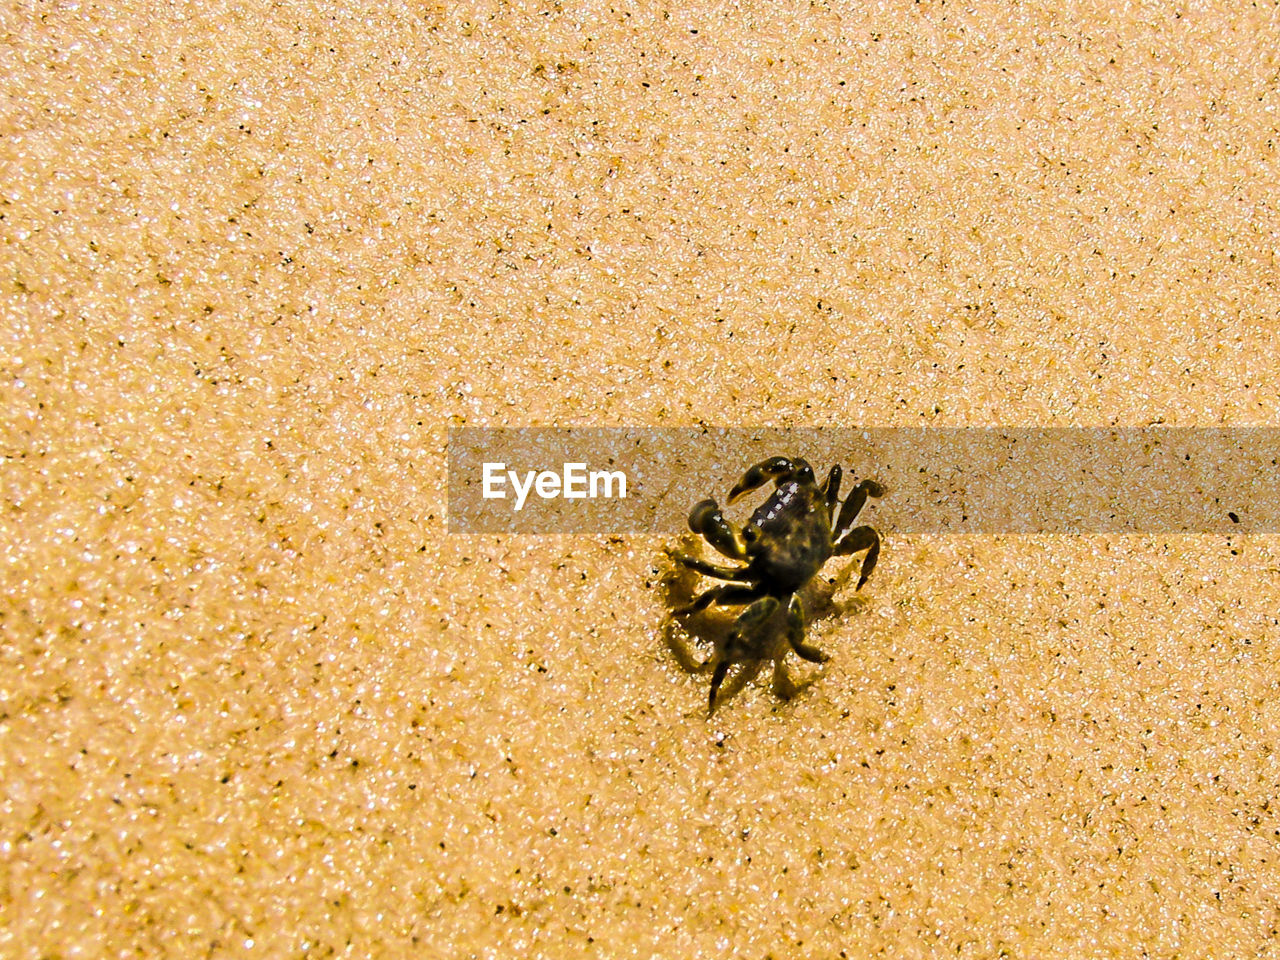 beach, sand, animal themes, animals in the wild, one animal, no people, nature, day, outdoors, animal wildlife, hermit crab, close-up